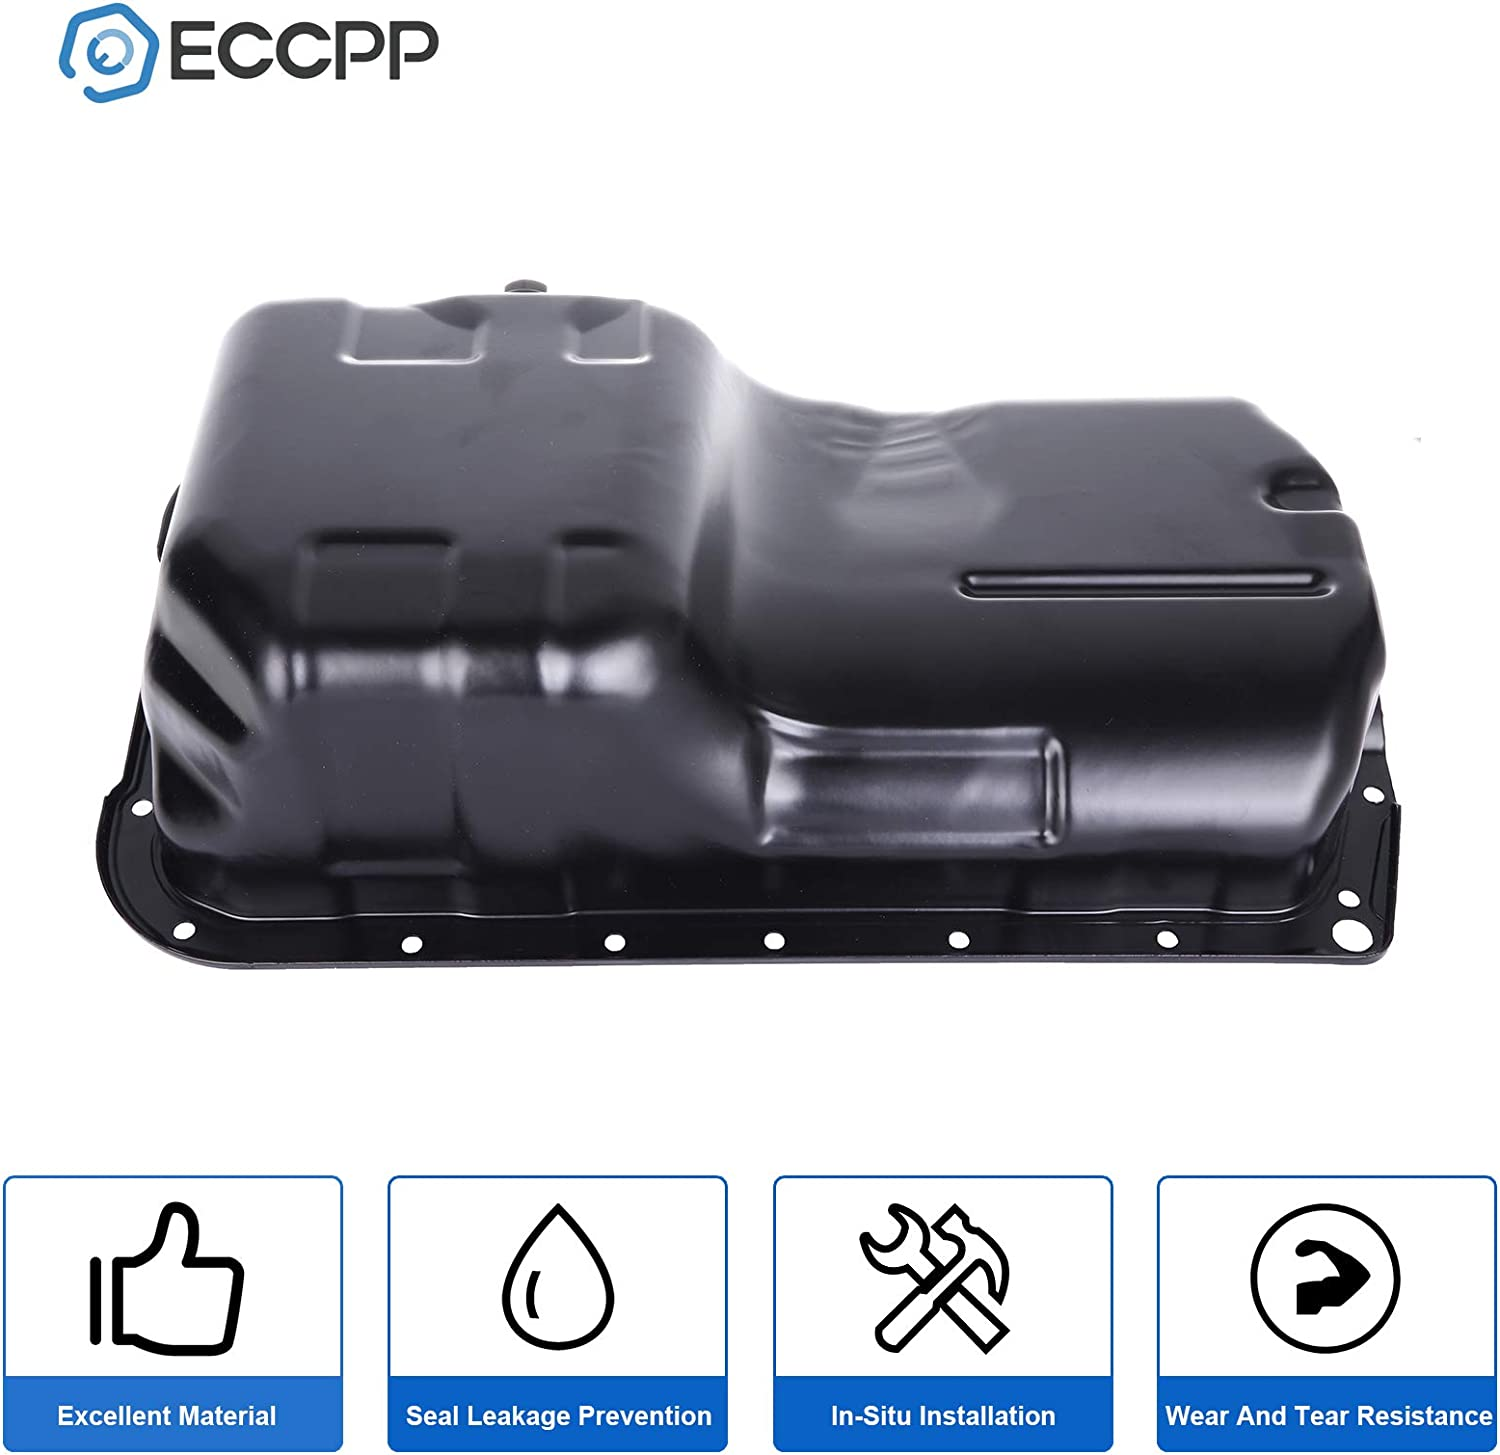 ECCPP Engine Oil Pan Drain Plug Kit fit for 98 99 00 01 02 Honda Accord Acura CL Honda Odyssey L4 2.3L Cummins Diesel Compatible with 264-406